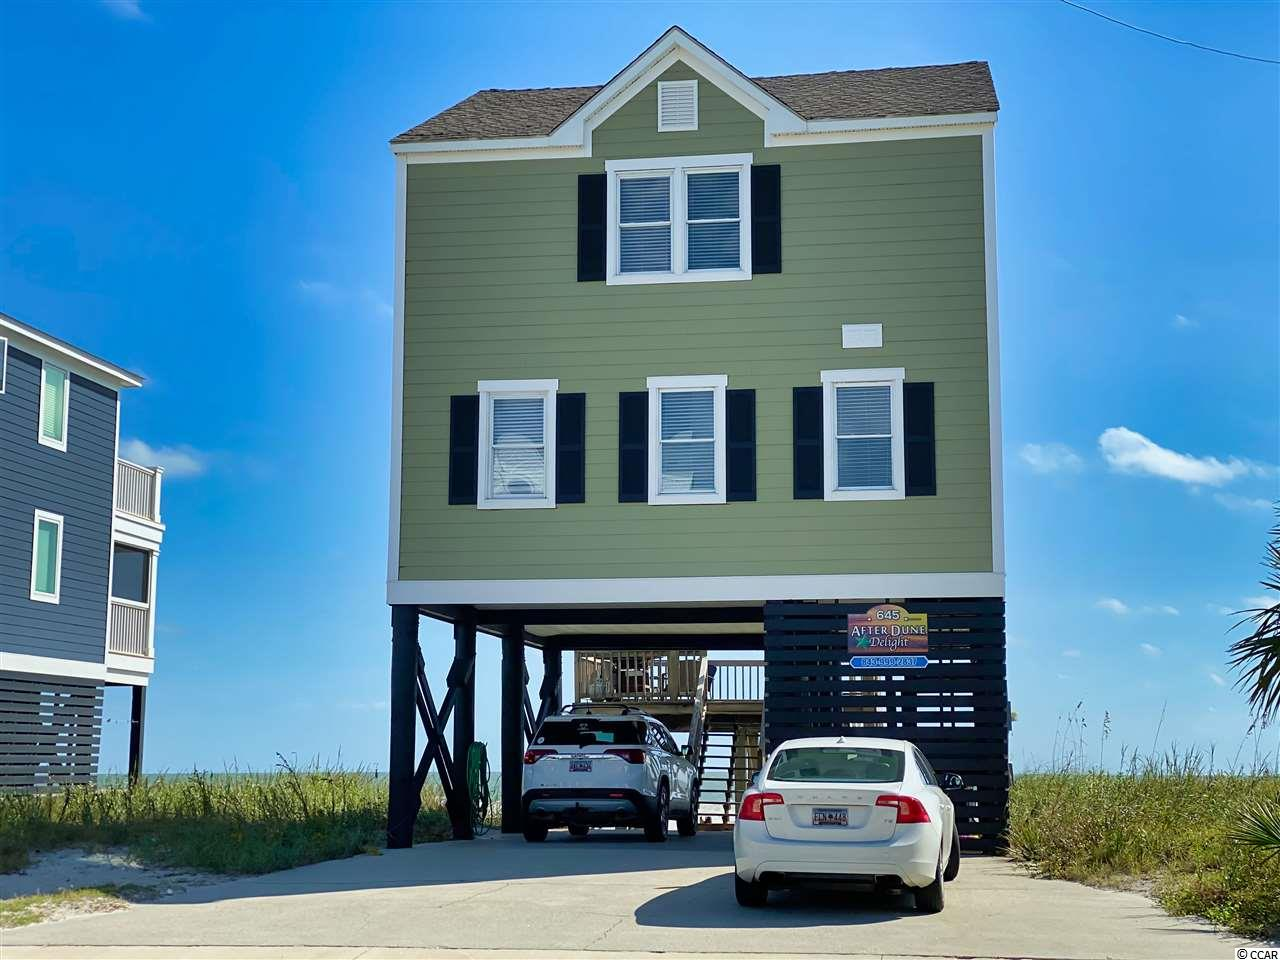 645 South Waccamaw Drive (After Dune Delight) is a four bedroom, three bath ocean front beach house, located in Garden City Beach, SC.  This home is newly renovated, featuring crisp new kitchen, bathrooms, flooring, lighting and more.  Enjoy beautiful views, bright, natural light and ample space to enjoy your time at the beach.  If the temperature is a bit chilly, hop in the hot tub and enjoy!  The back deck is being updated, so be on the lookout for new photos.  To see more of this wonderful property, check out the walking video tour on my YouTube channel.